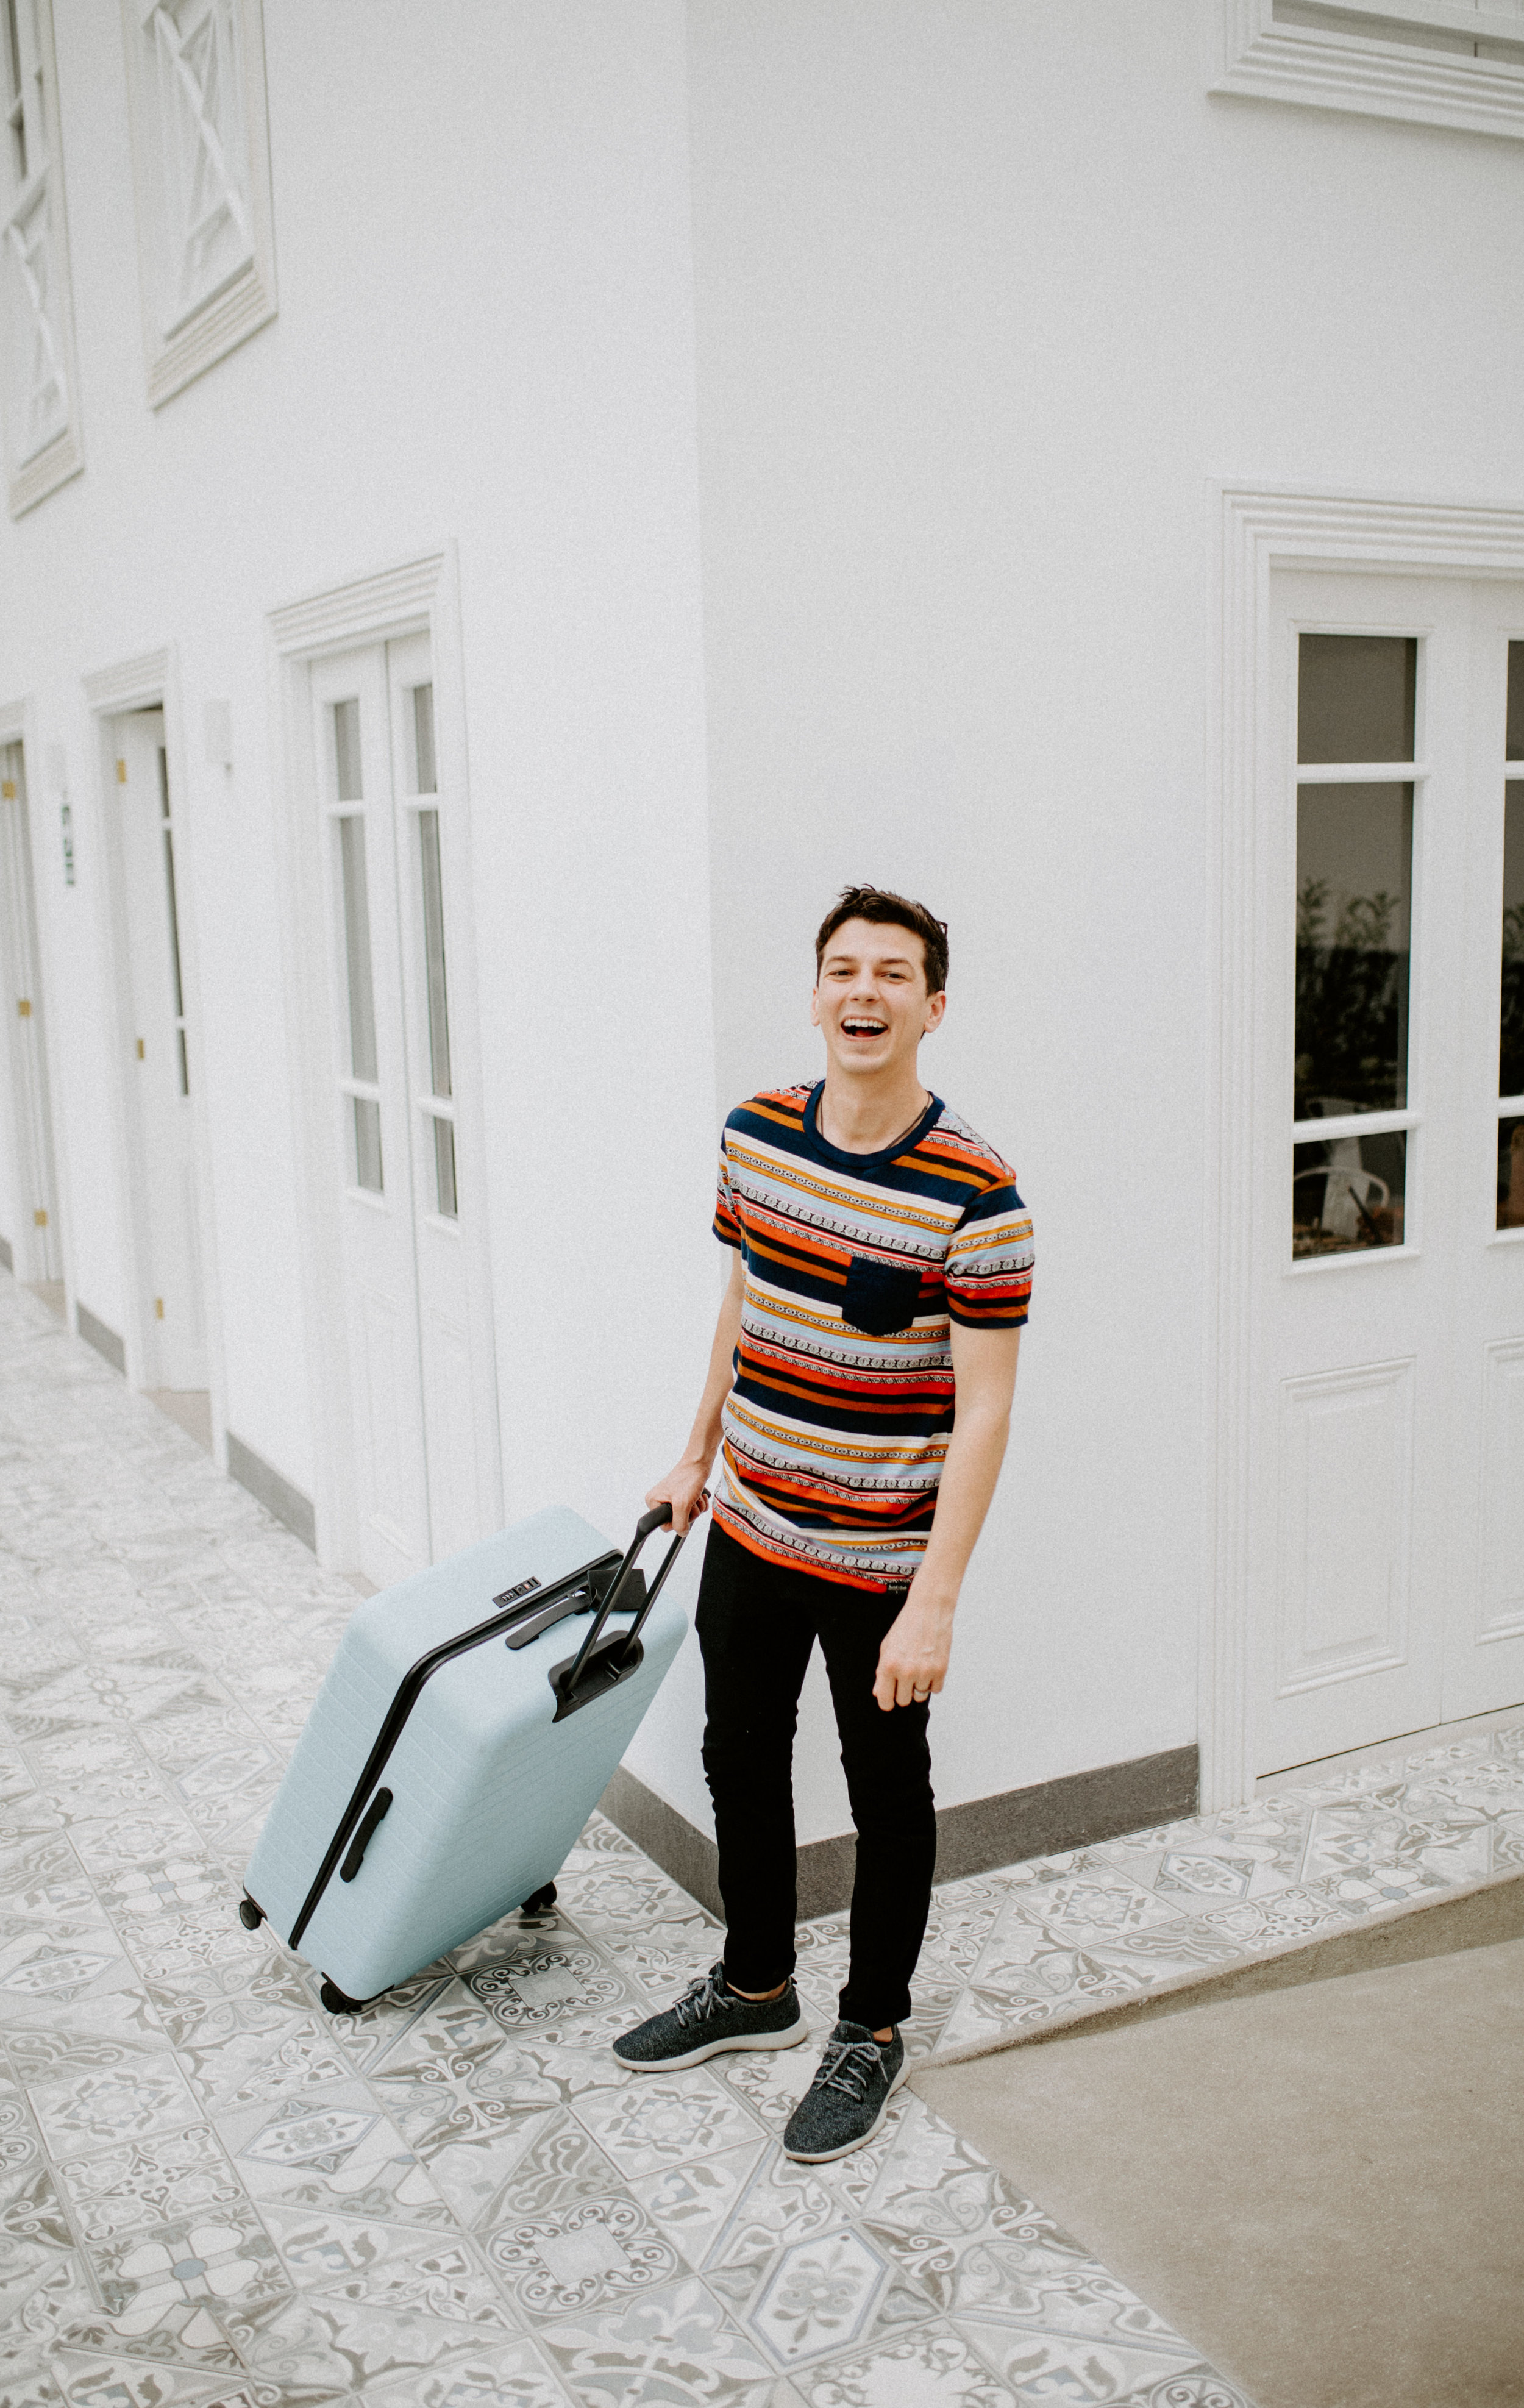 A happy  @MatthewSchueller  checks into his room at Casa República, featuring a favorite sky-blue  @Away  bag. Thanks for the snap  @AndyLalwani !